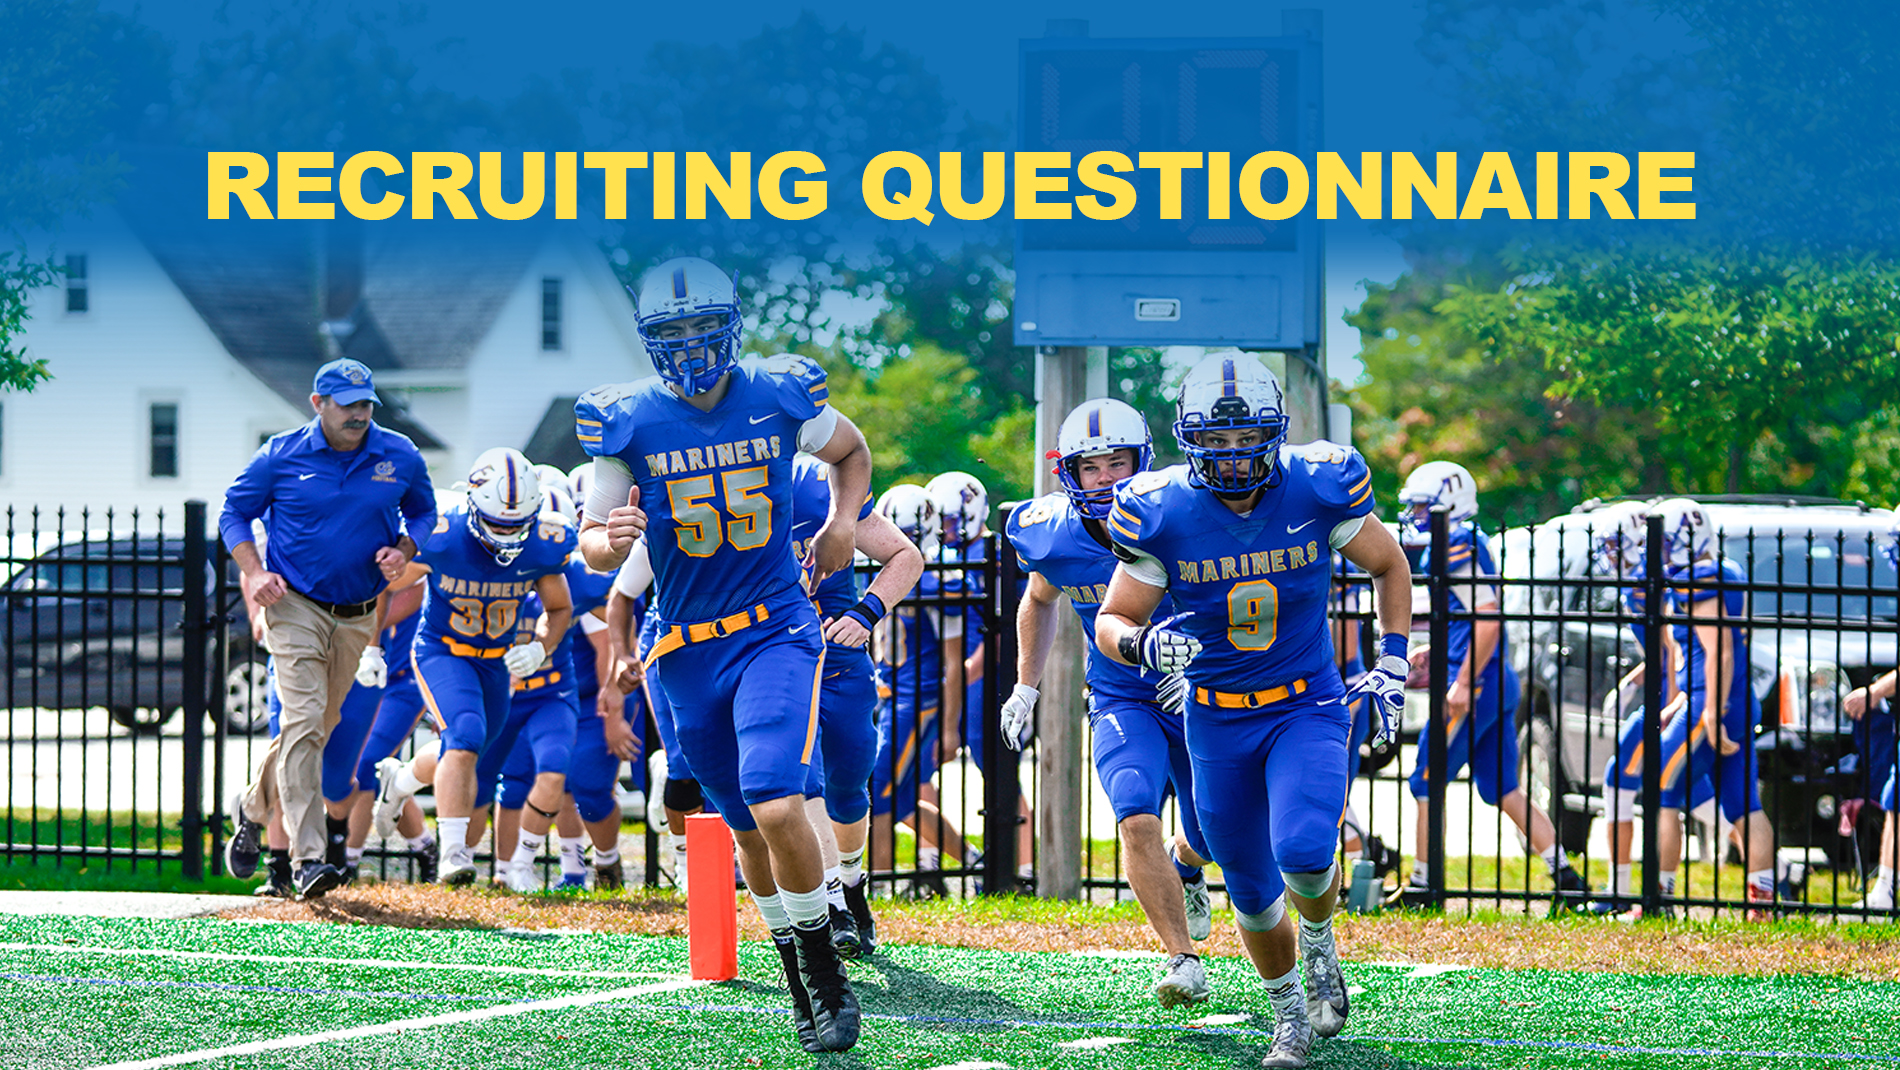 Recruiting Questionnaire